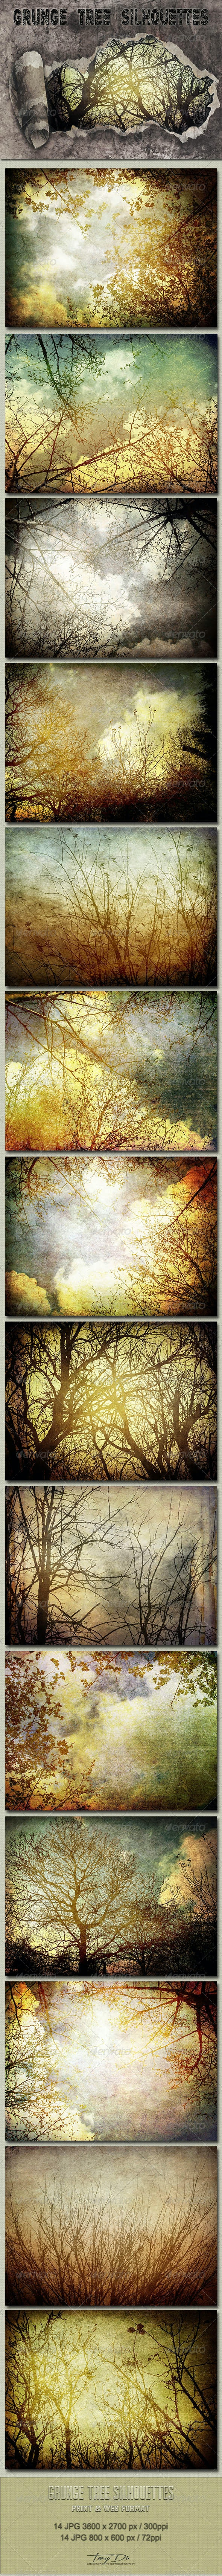 Grunge Tree Silhouettes - Nature Backgrounds